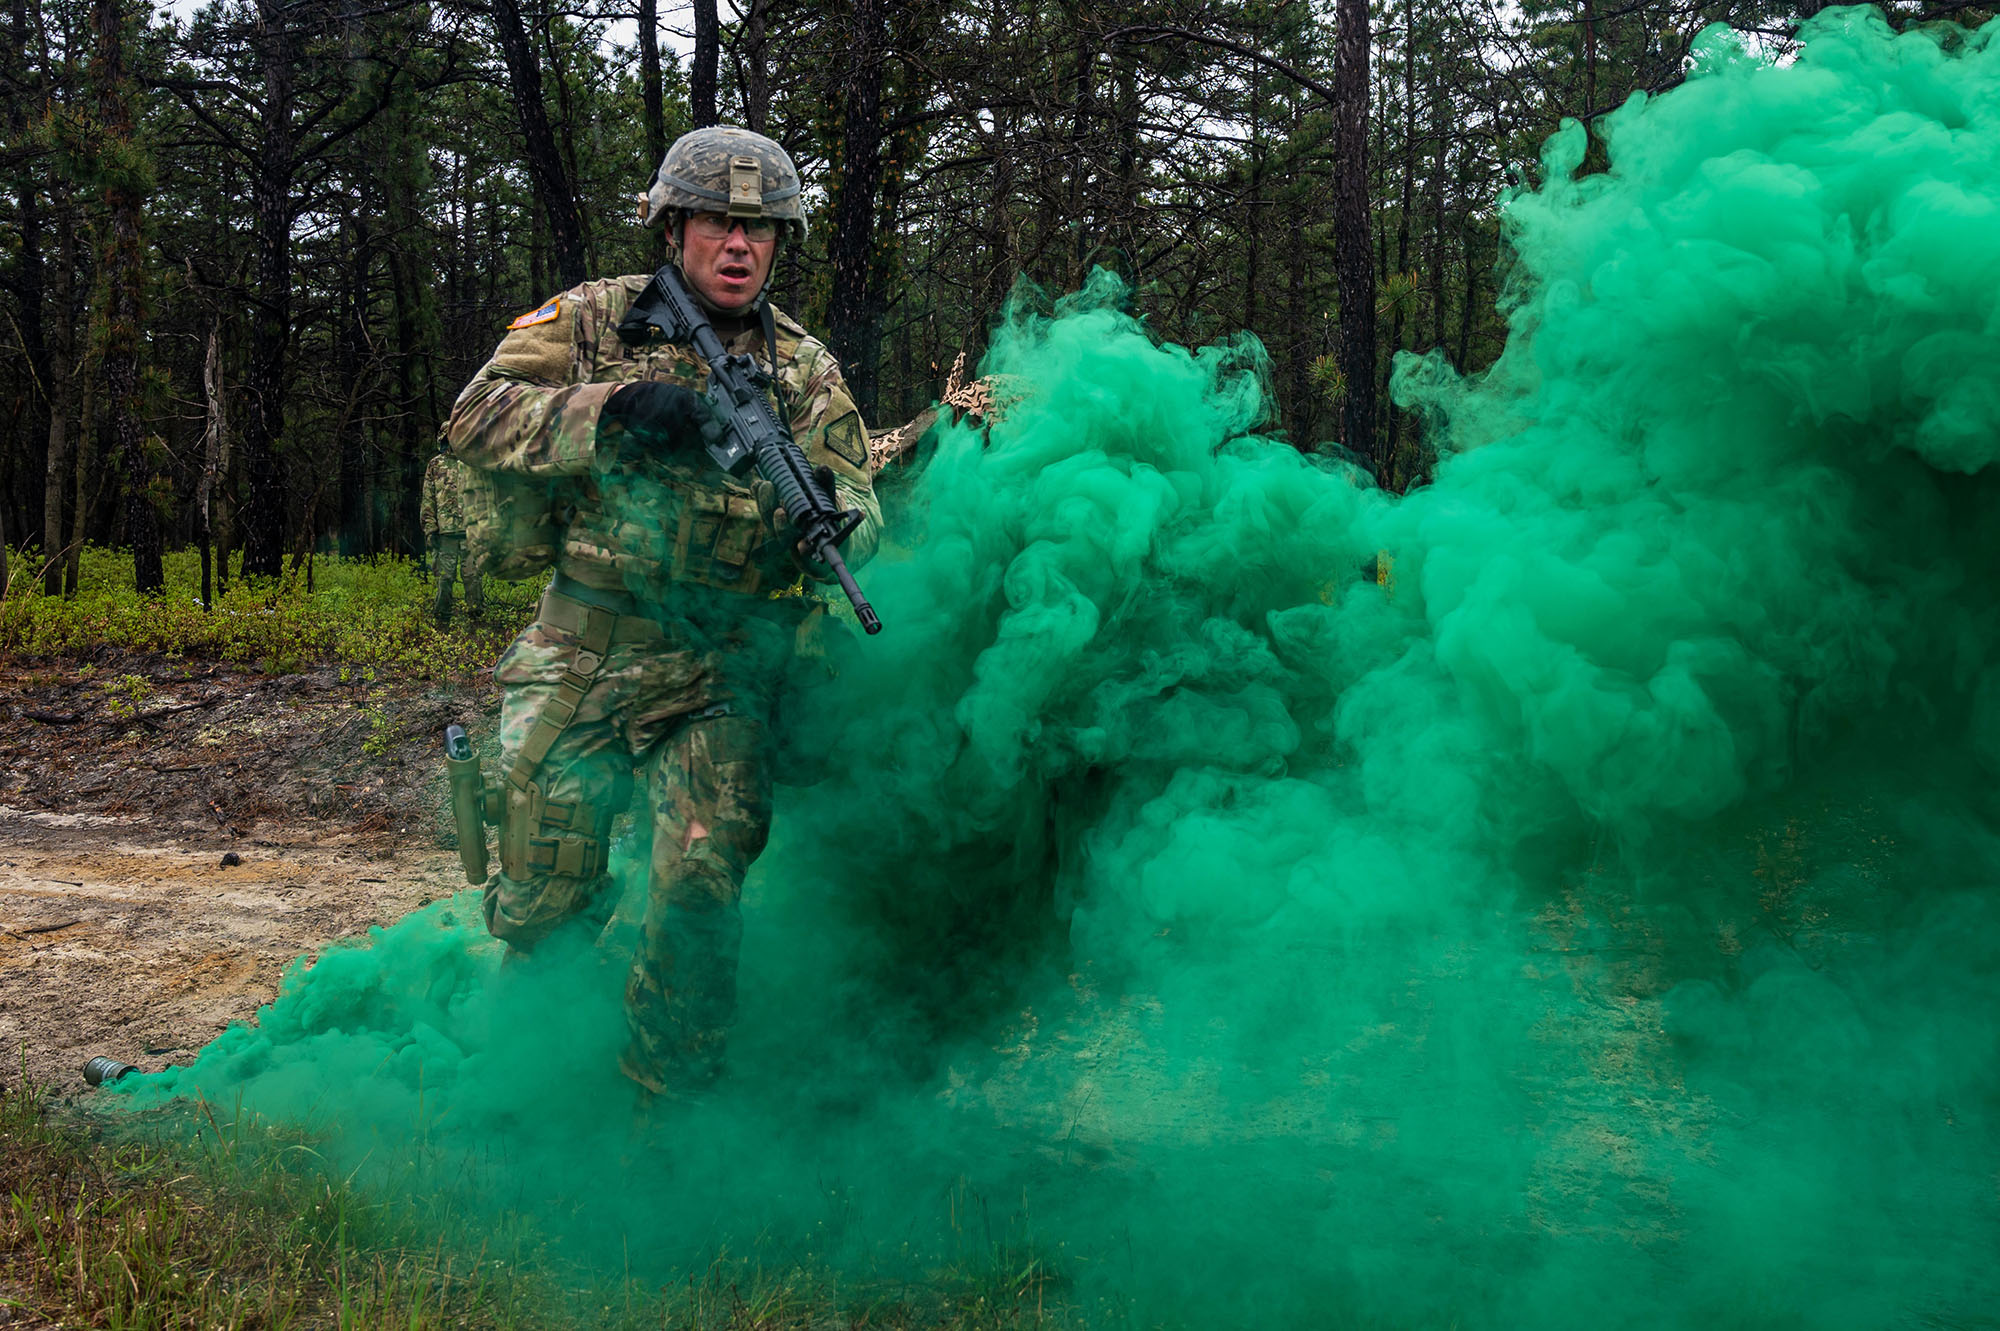 U.S. Army Staff Sgt. Ralph Bird, New Jersey National Guard, competes in the stress shoot event during the Region 1 Best Warrior Competition (BWC) at Joint Base McGuire-Dix-Lakehurst, N.J., May 5, 2021. (Spc. Michael Schwenk/National Guard)